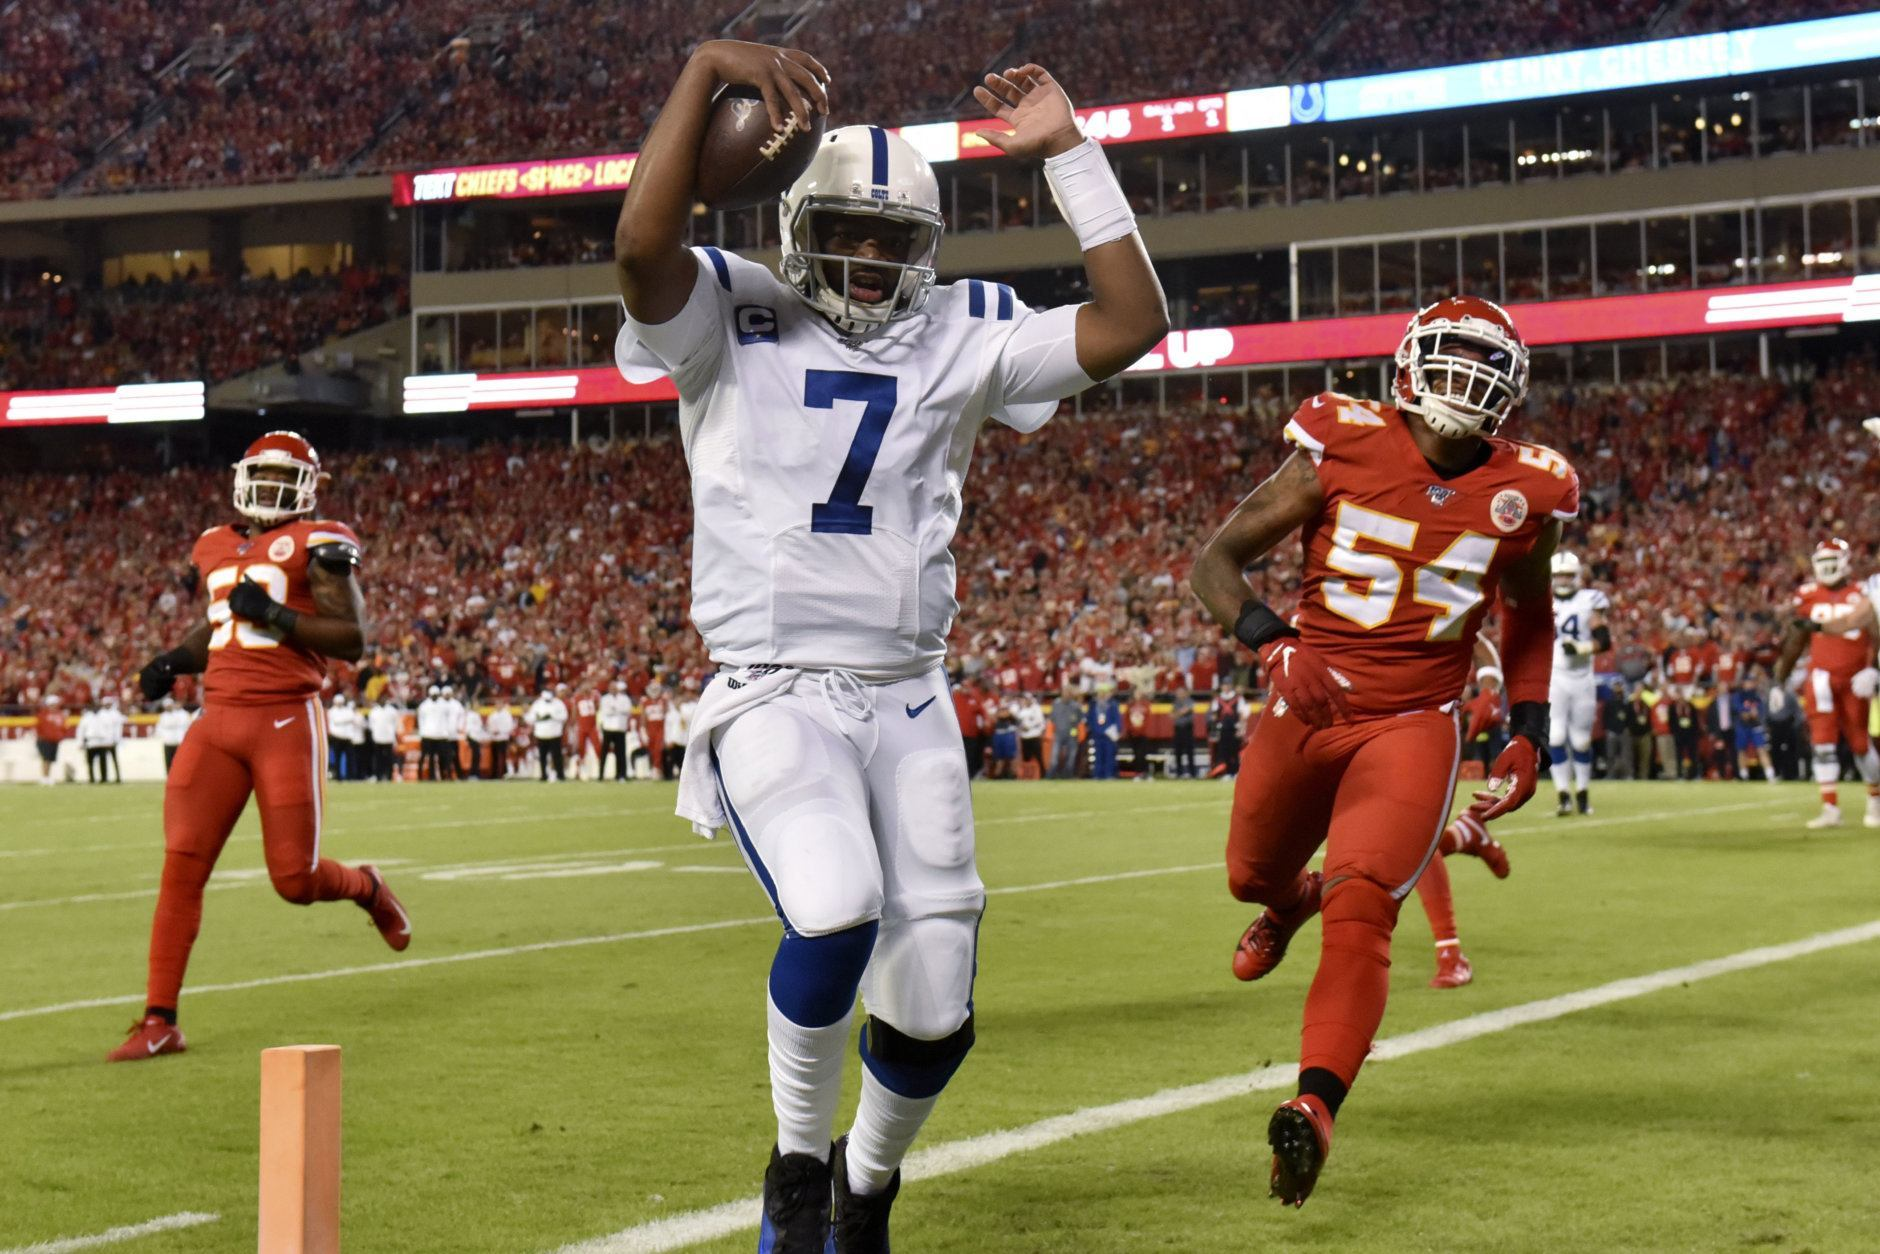 "<p><b><i>Colts 19</i></b><br /> <b><i>Chiefs 13</i></b></p> <p>Whatever <a href=""https://profootballtalk.nbcsports.com/2019/10/03/justin-houston-helping-colts-figure-out-a-game-plan-for-patrick-mahomes/"">Justin Houston told the Colts defense</a> about slowing down Patrick Mahomes clearly worked. A week after blowing one to the Raiders at home, Indy dominated the line of scrimmage on both sides of the ball to notch a signature win in the post-Luck era.</p> <p>Meanwhile, Kansas City has to be worried about Mahomes&#8217; ankle. Even though the reigning MVP at 80% is still a Pro Bowler, the Chiefs need him healthy to overcome that shaky defense.</p>"